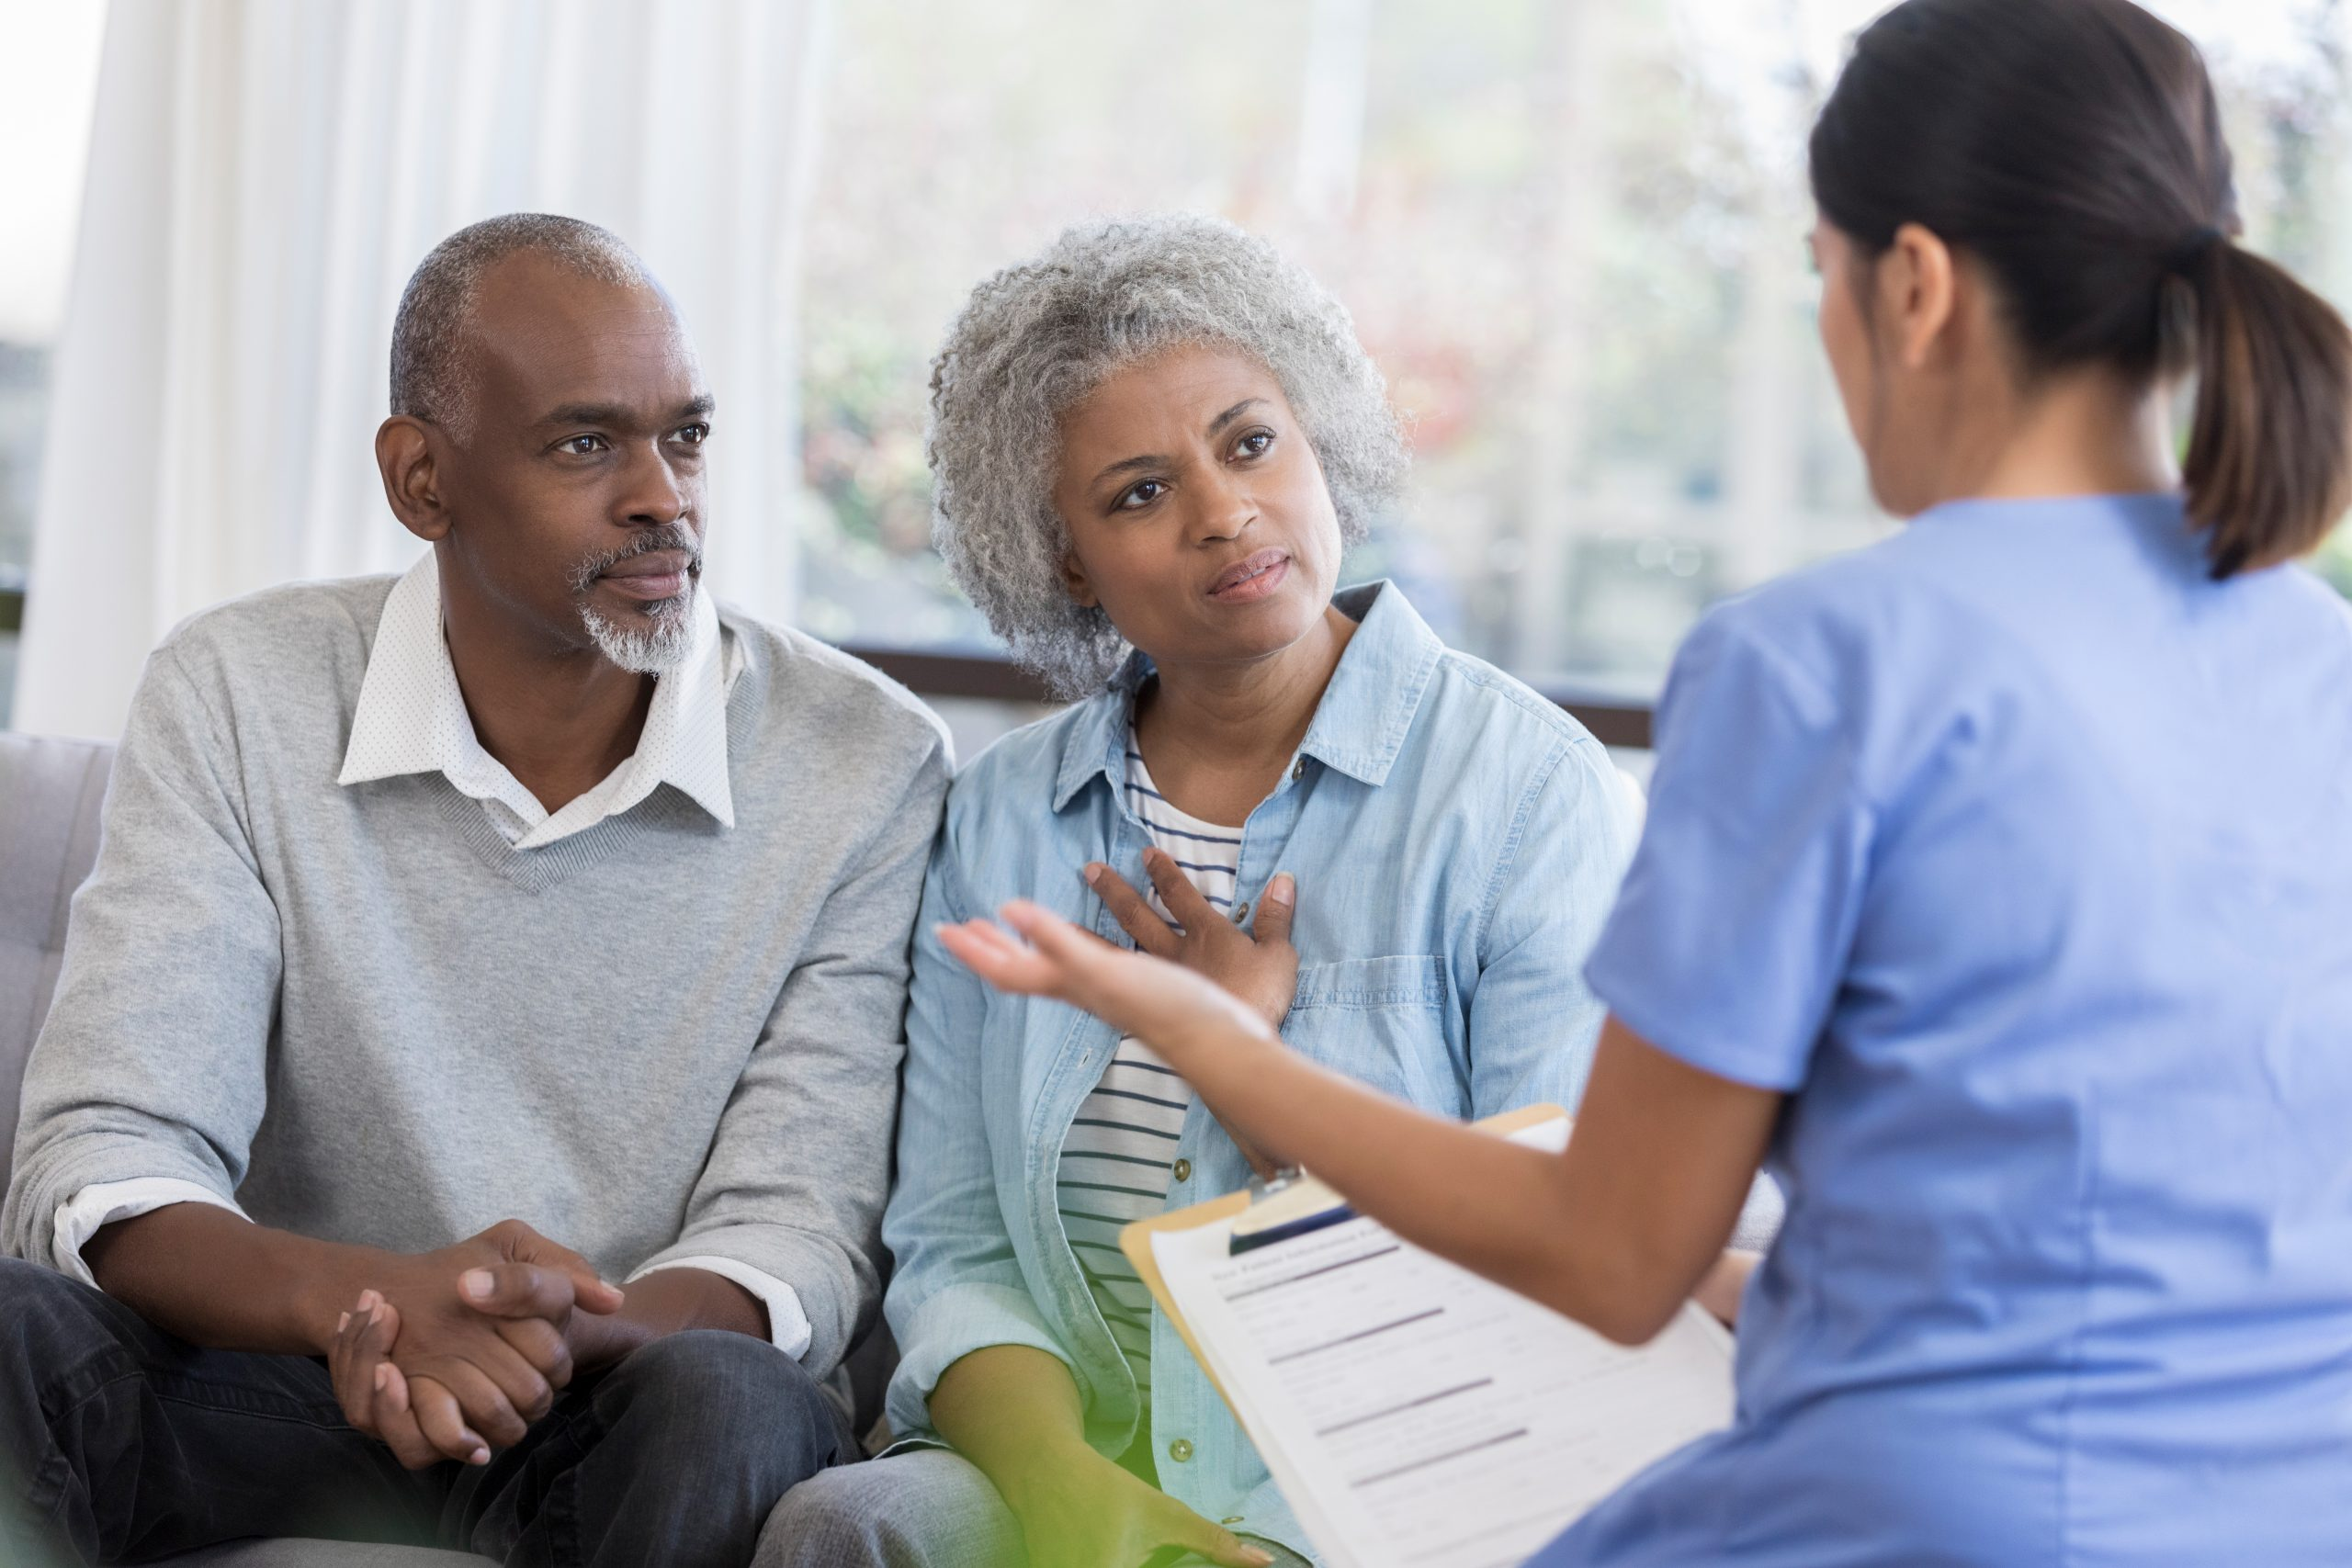 The Best Treatment Options For Seniors With Mesothelioma